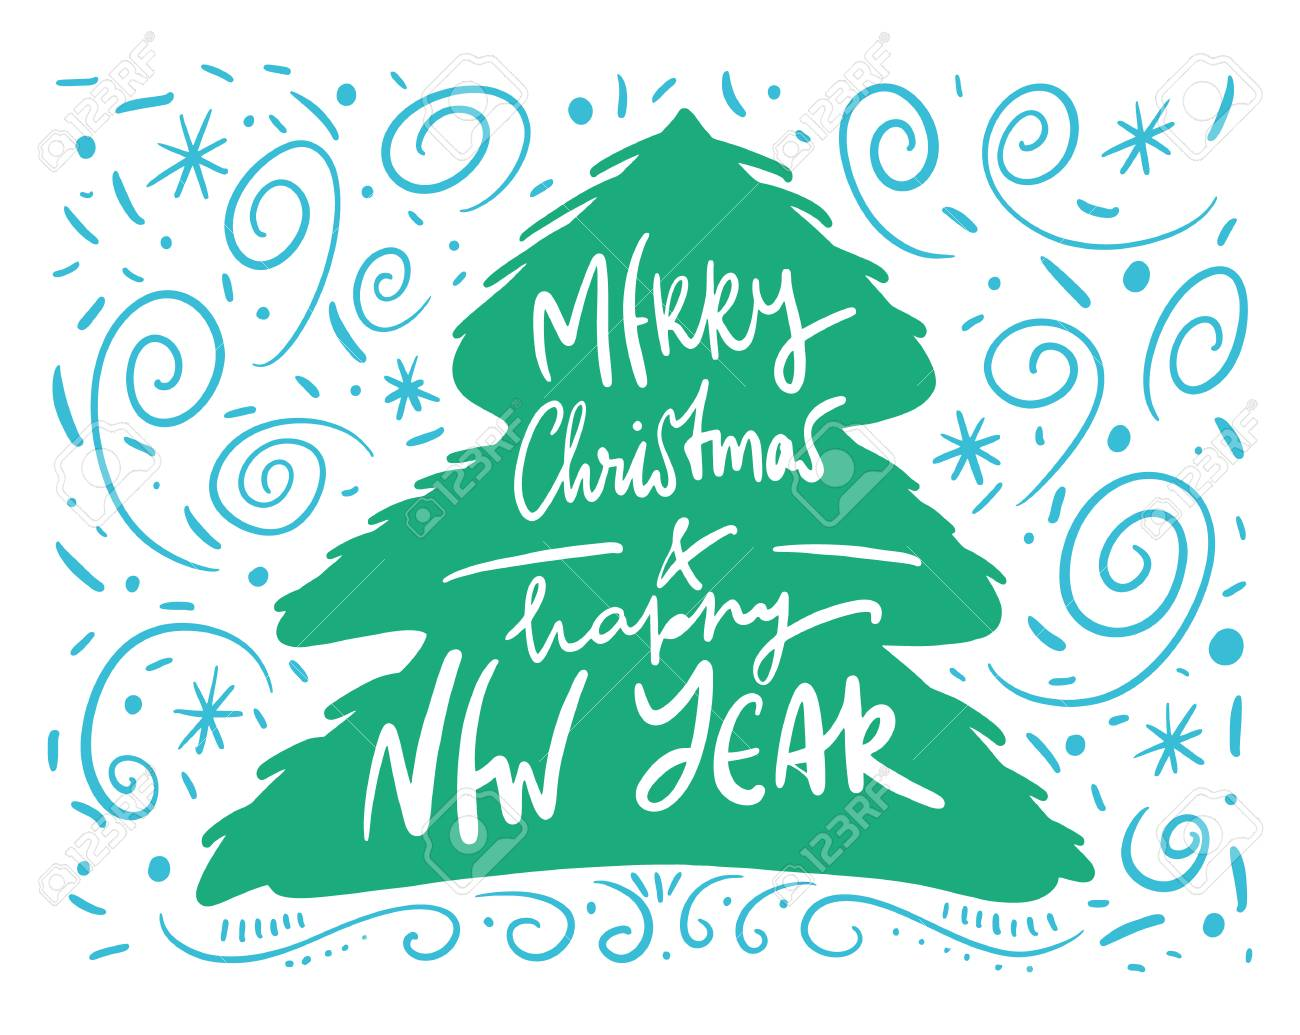 Merry Christmas Wishes And Winter Holiday Elements Christmas